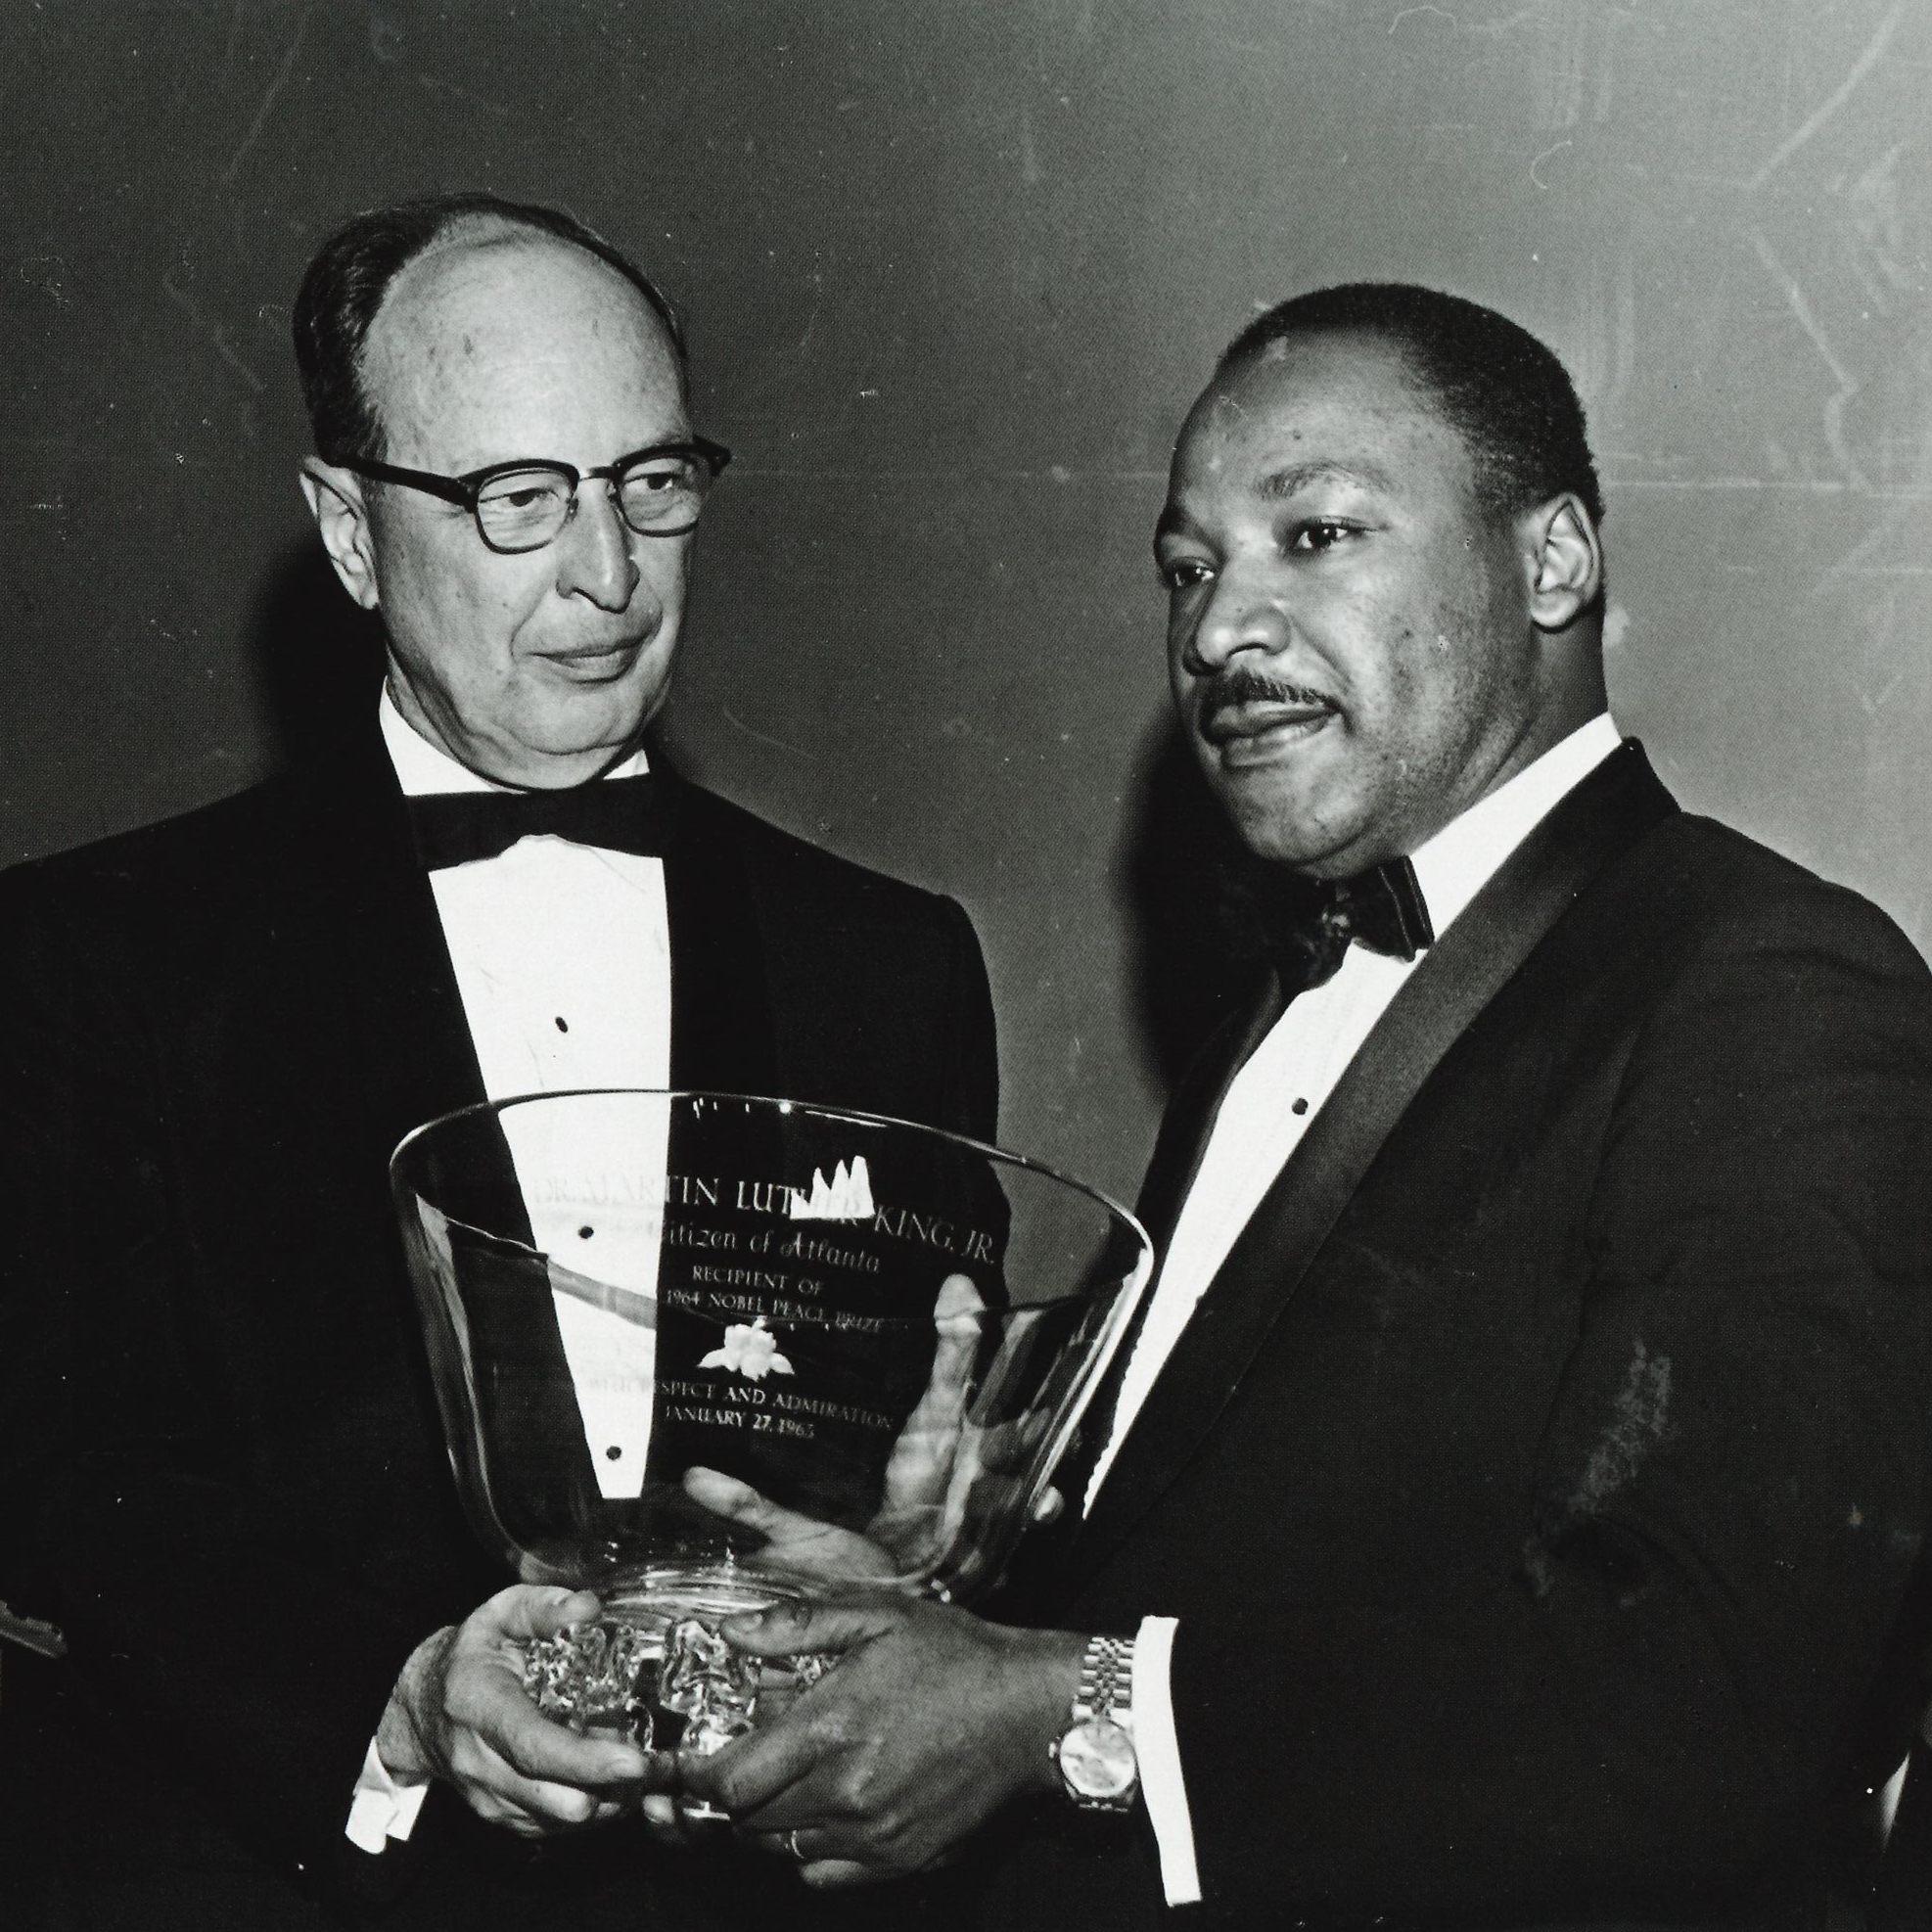 Dr. Martin Luther King Jr. receiving a Steuben gift